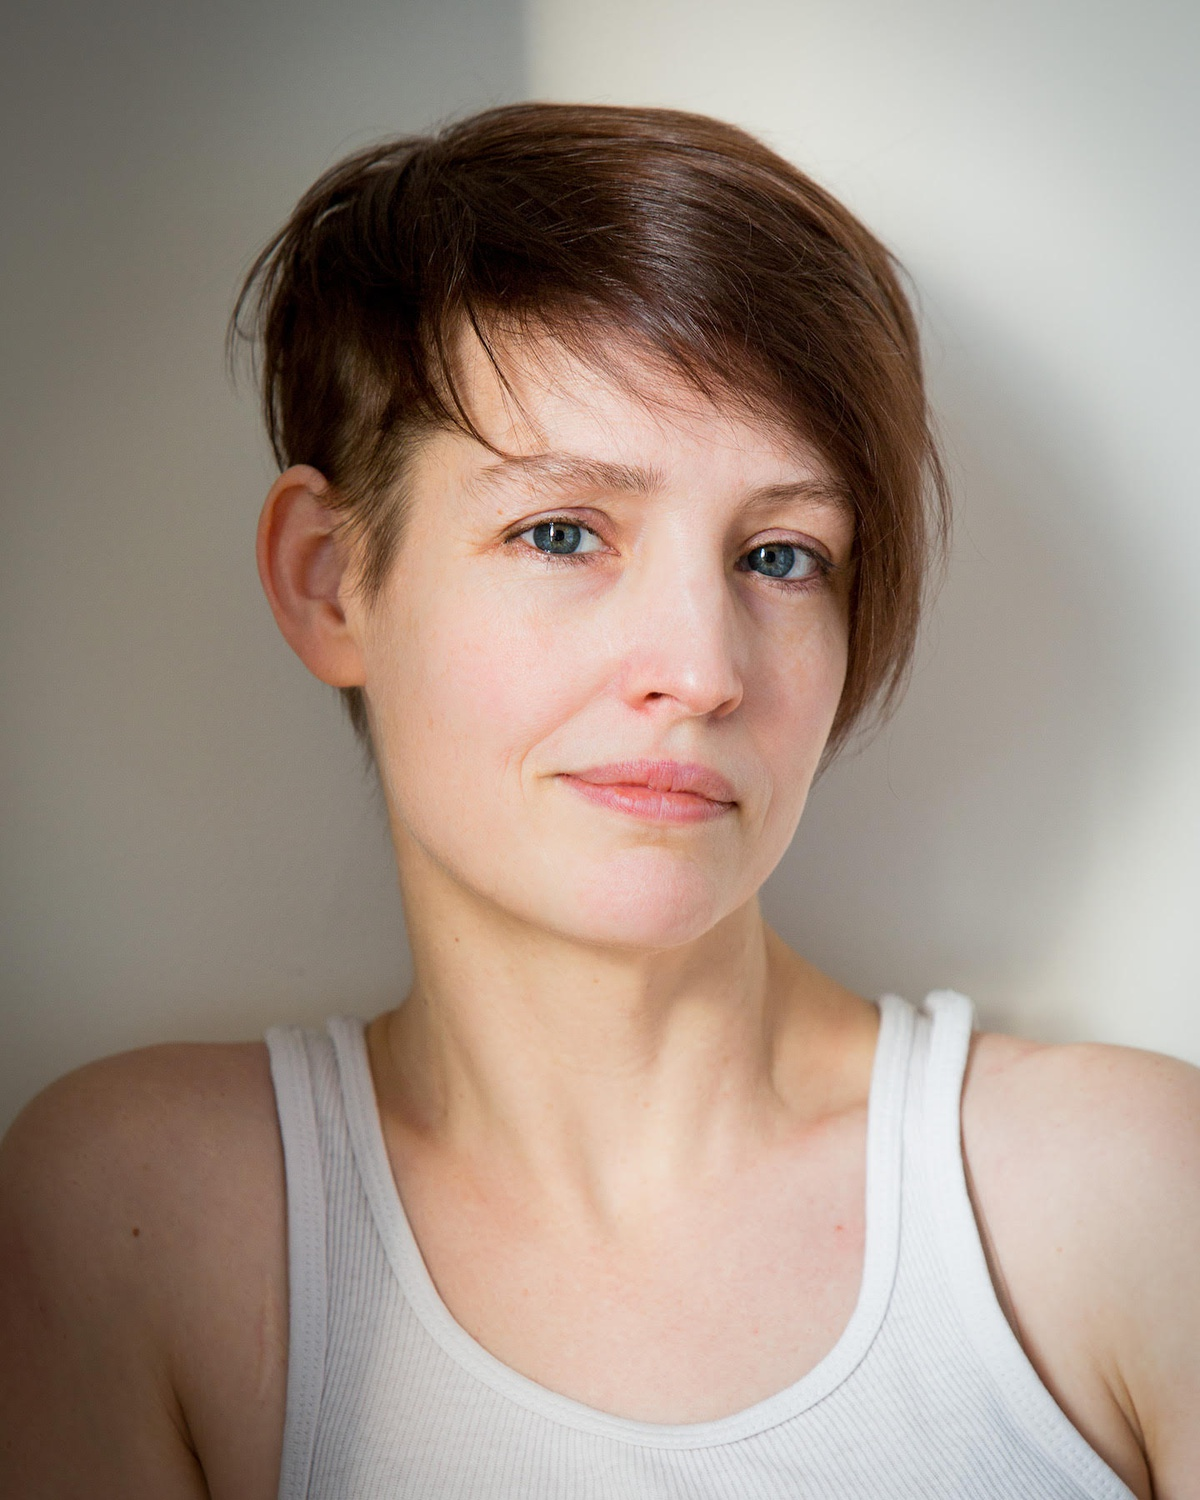 """Kate Brehm is a self-described """"movement director"""" and professional puppeteer."""